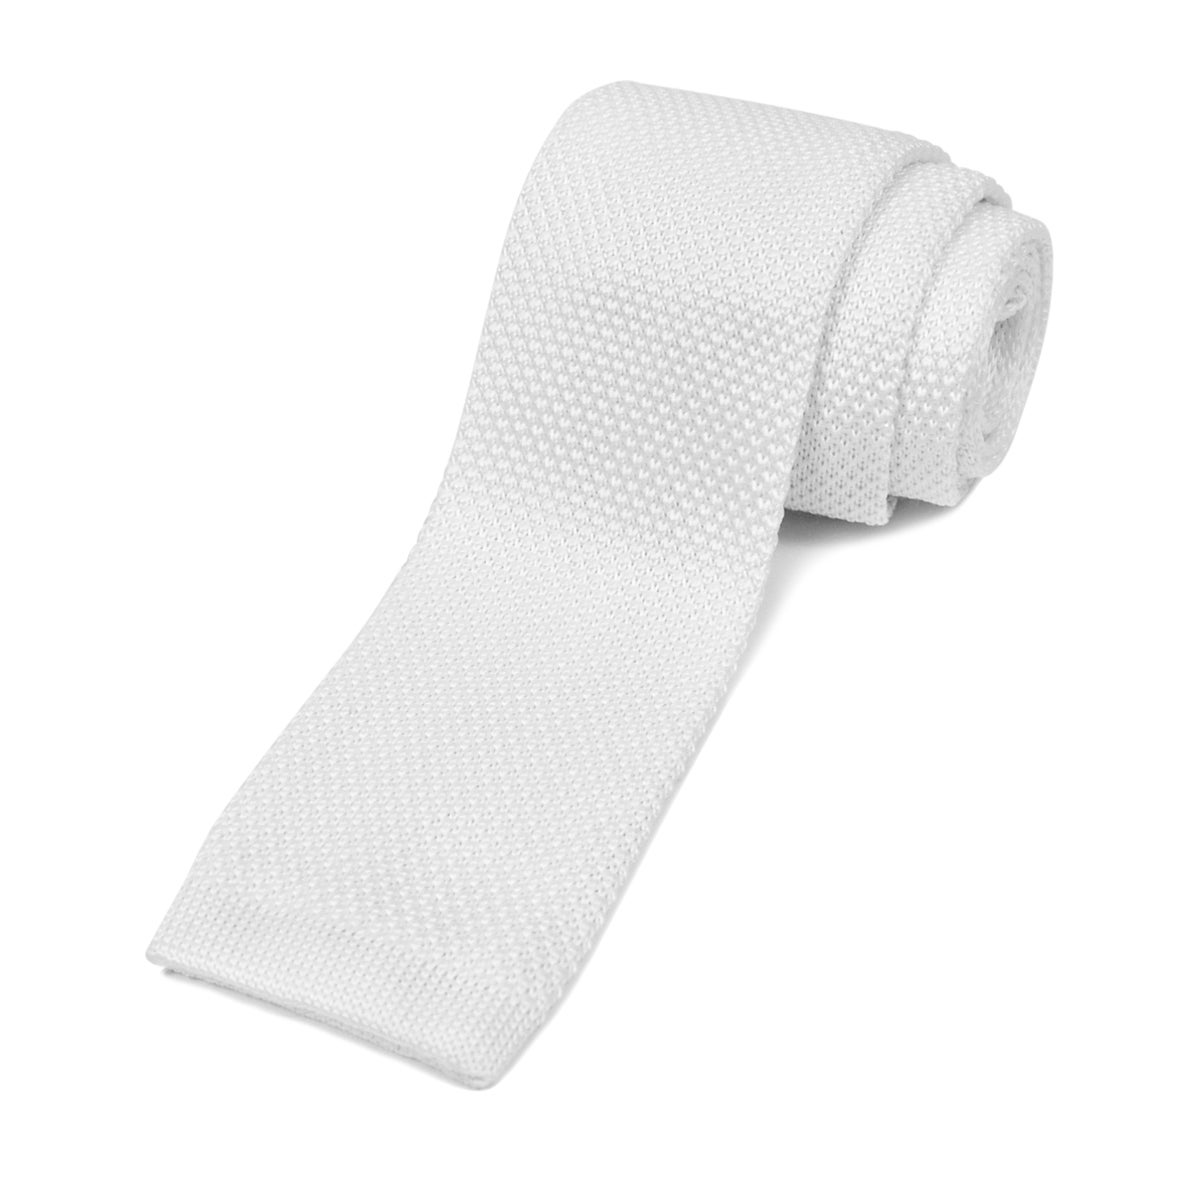 Image of Knit Ties